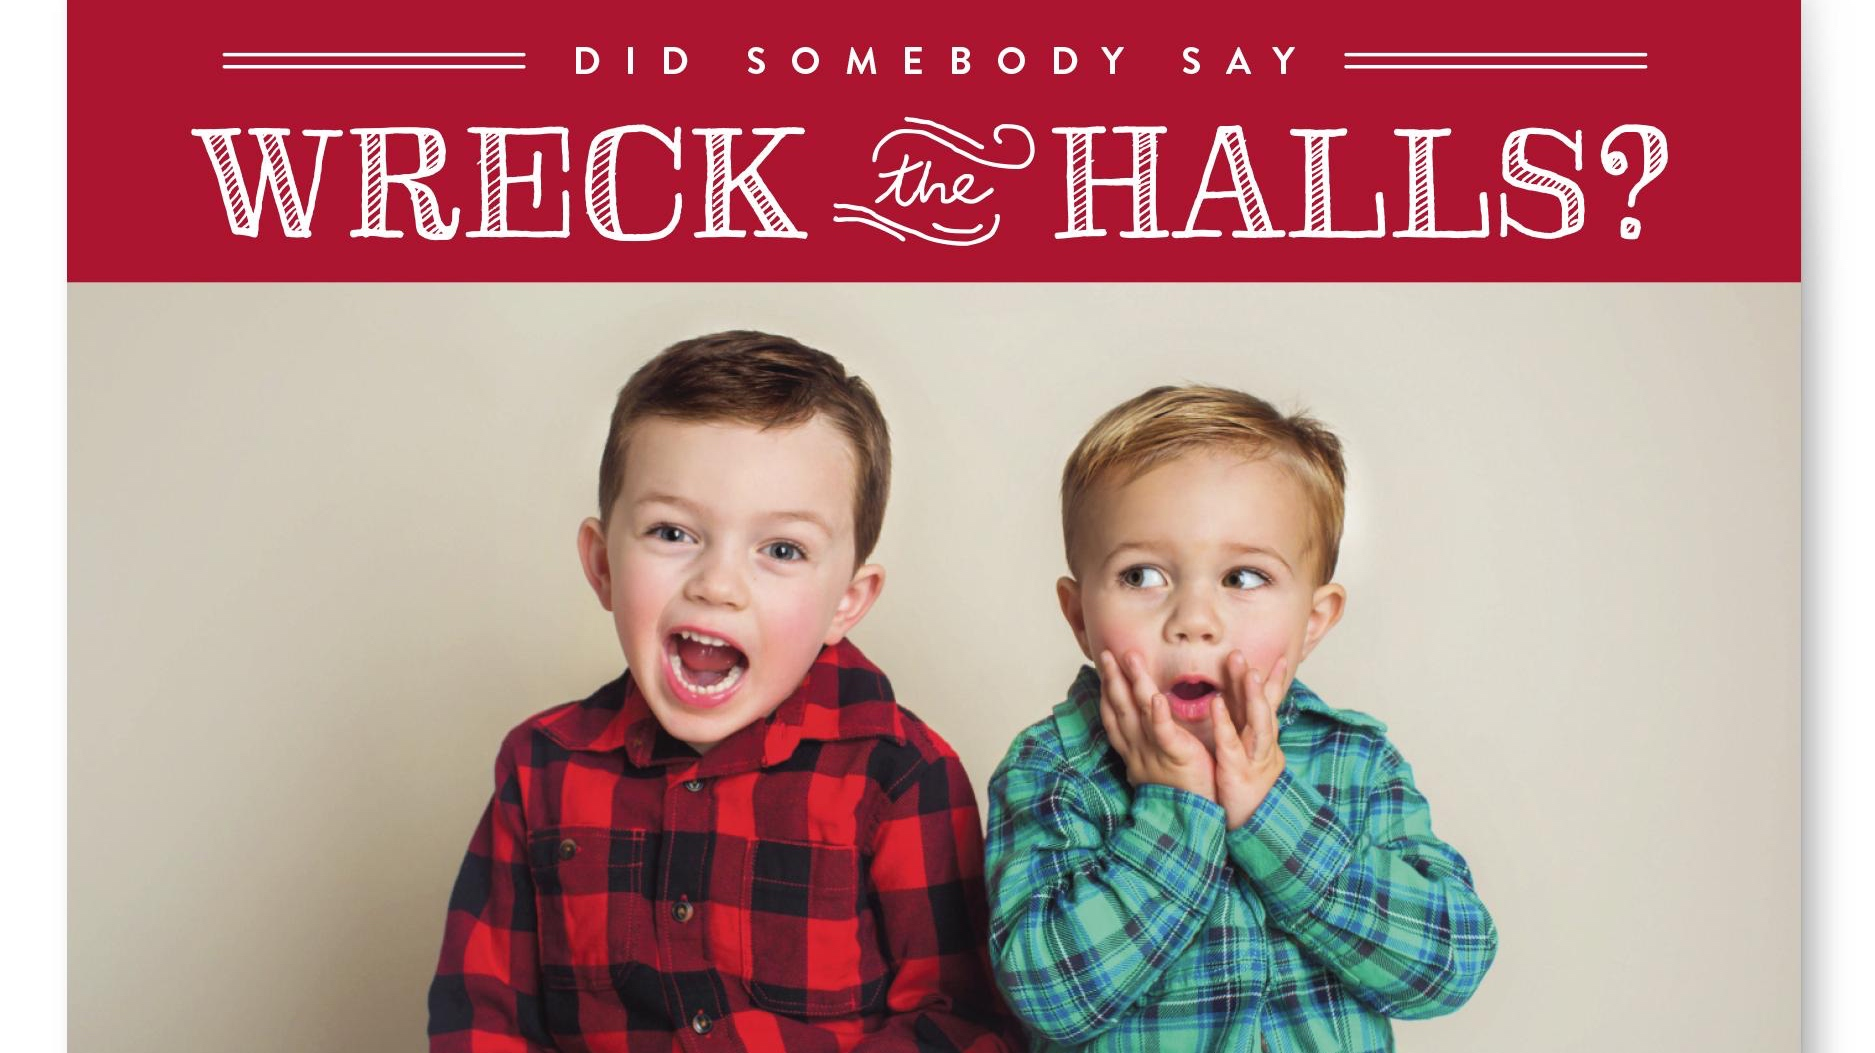 Wreck the halls card.